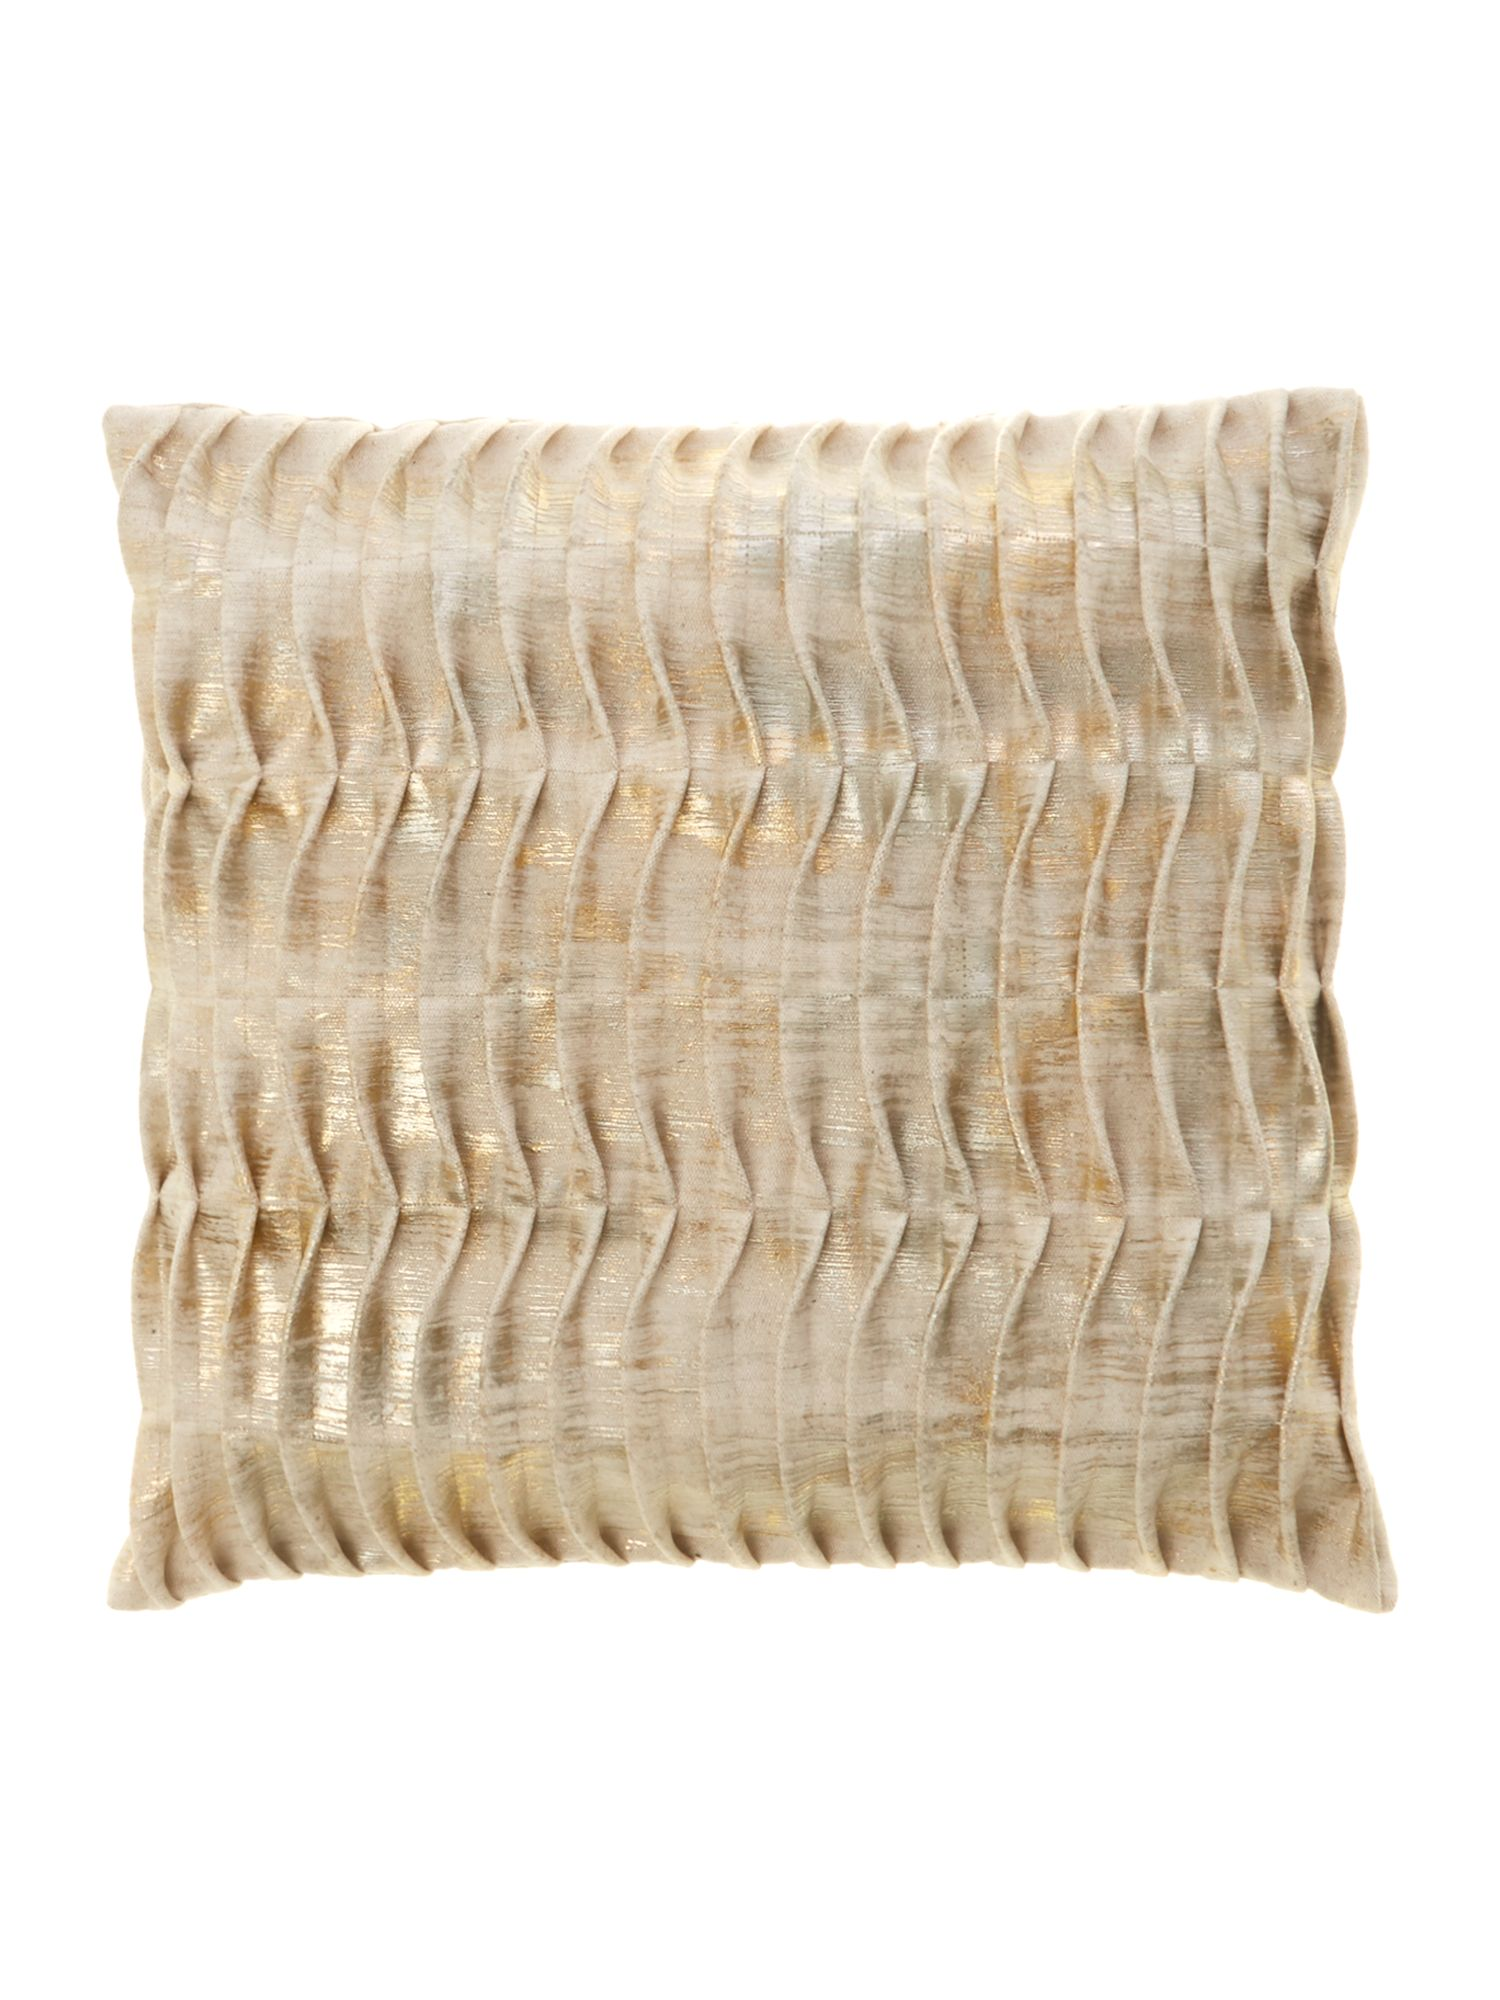 Leblon wave-stitch, foiled pillow in pewter/gold